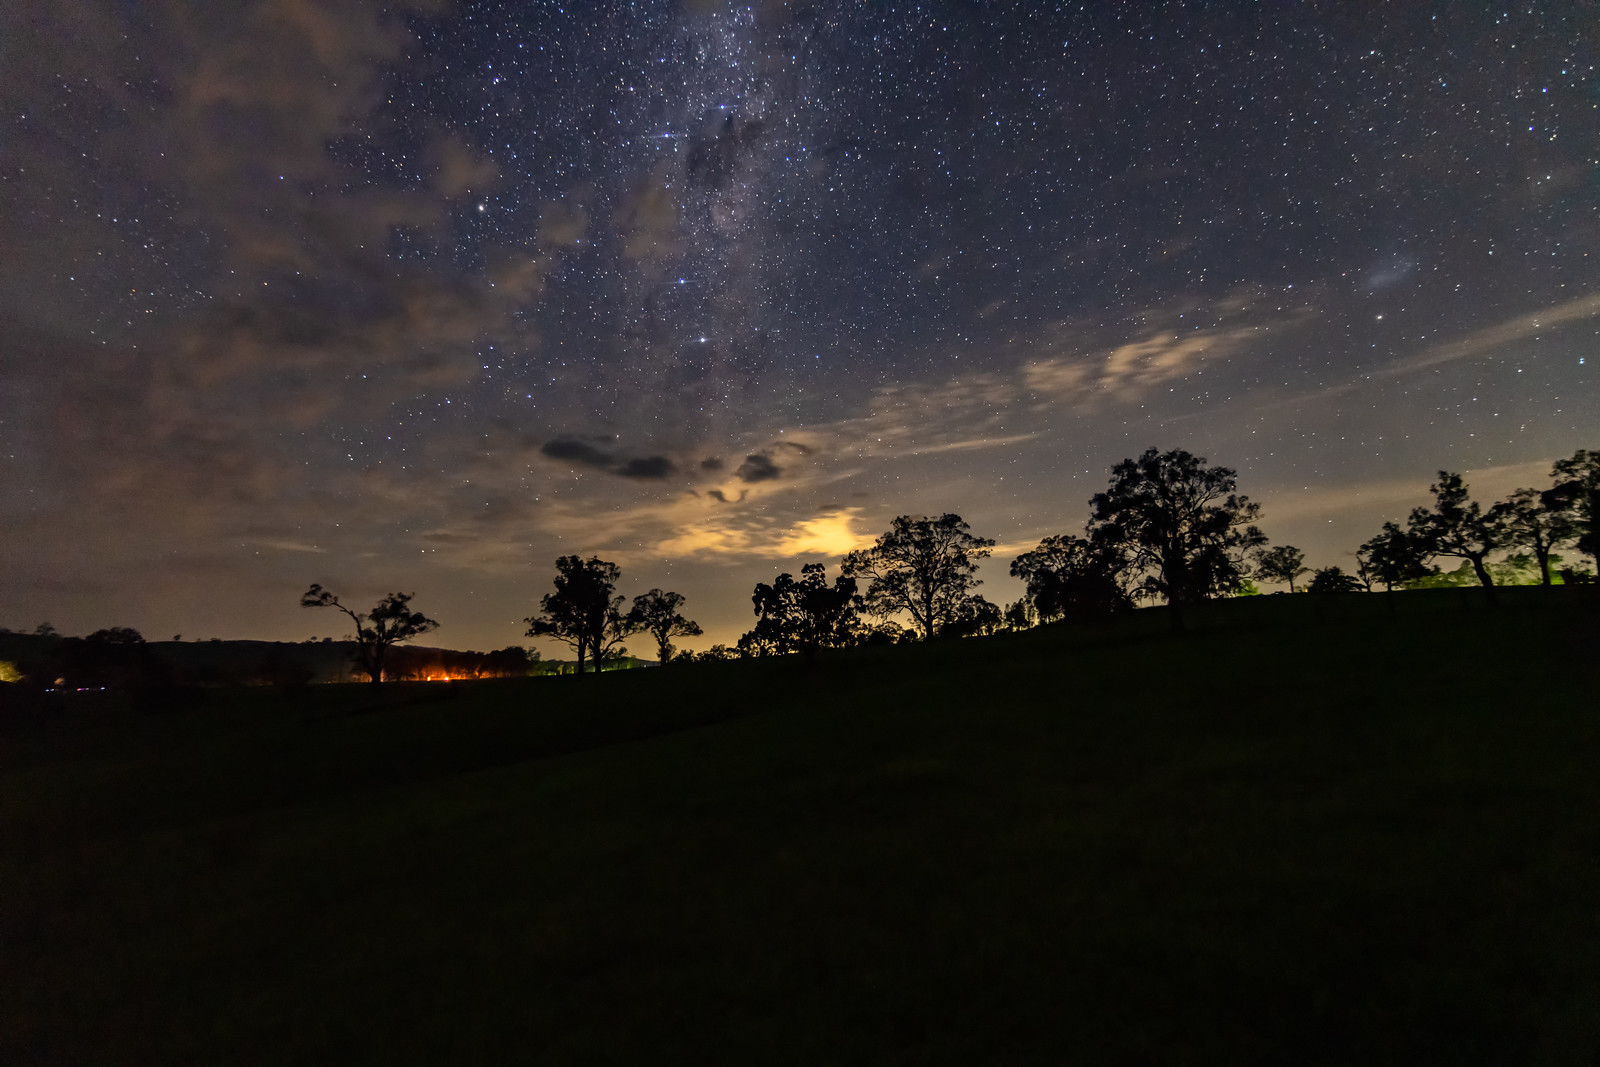 Rural Countryside Starry Night